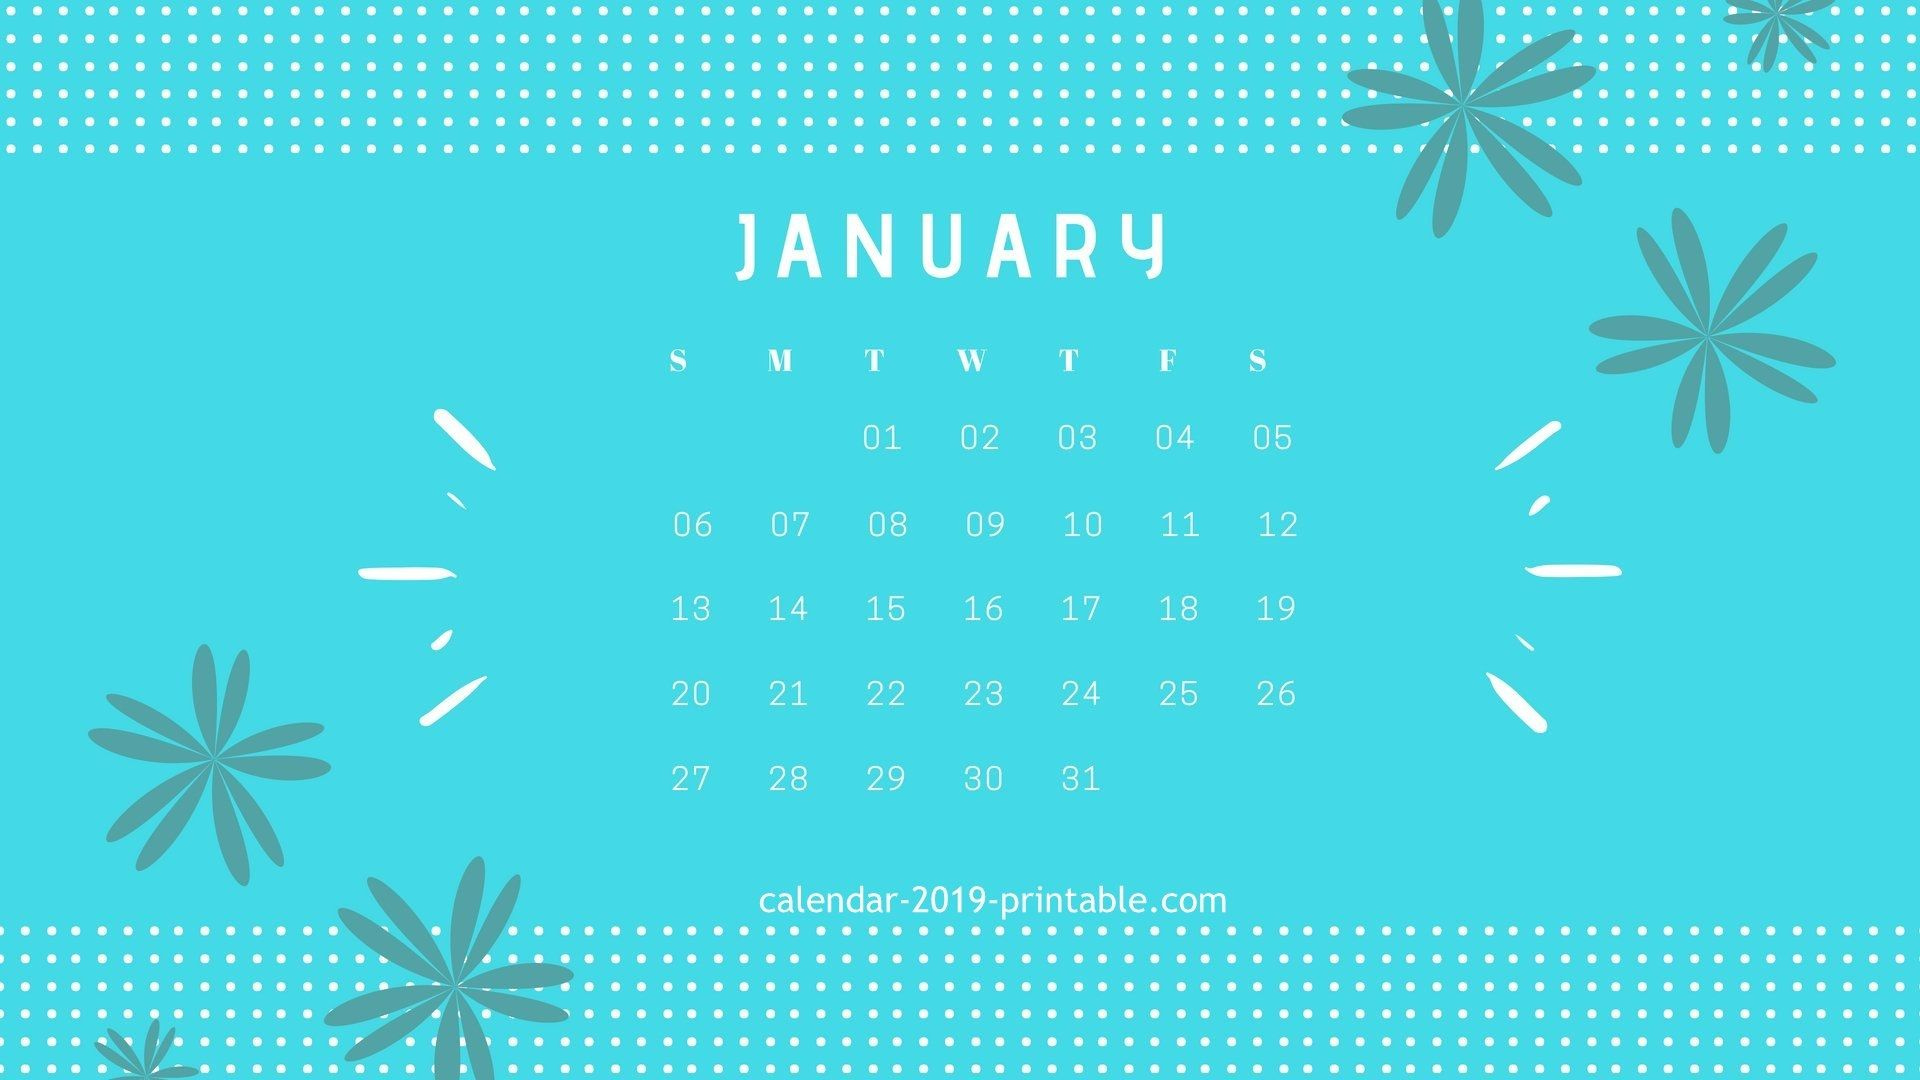 January 2019 Calendar Desktop january 2019 calendar desktop wallpapers calendar 2019